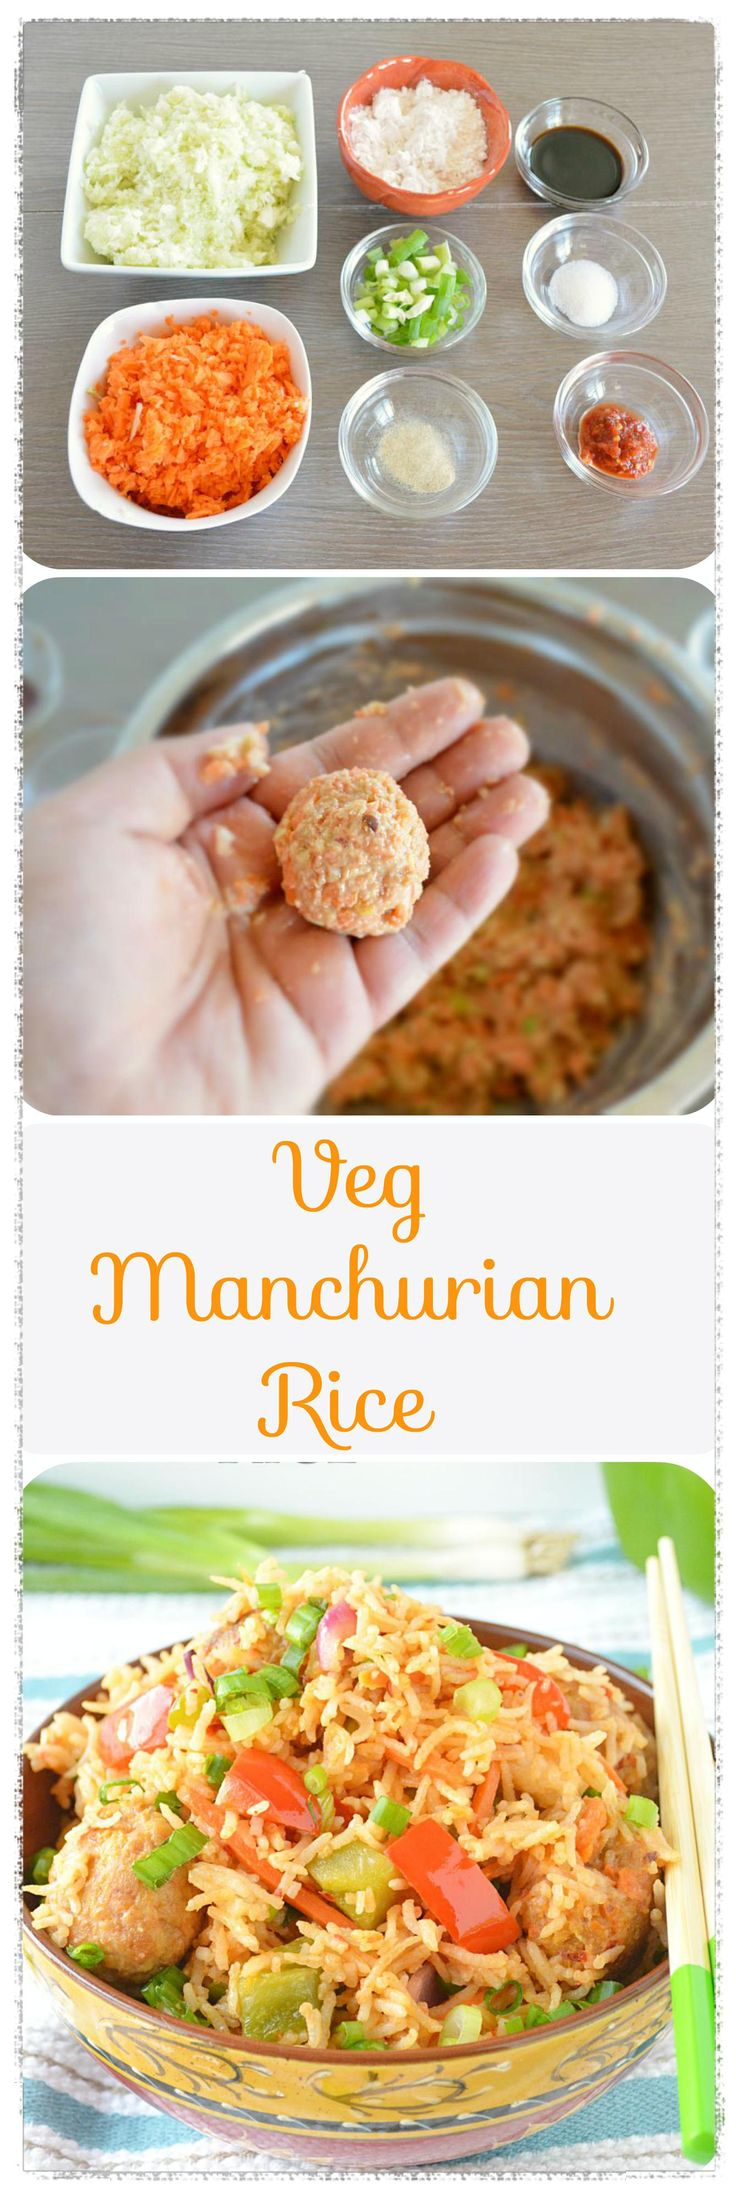 Mixed vegetable balls along with rice is tossed in soy tomato based sauce is a popular Indo - Chinese recipe. #vegmanchurianrice (Chinese Mix Vegetables)